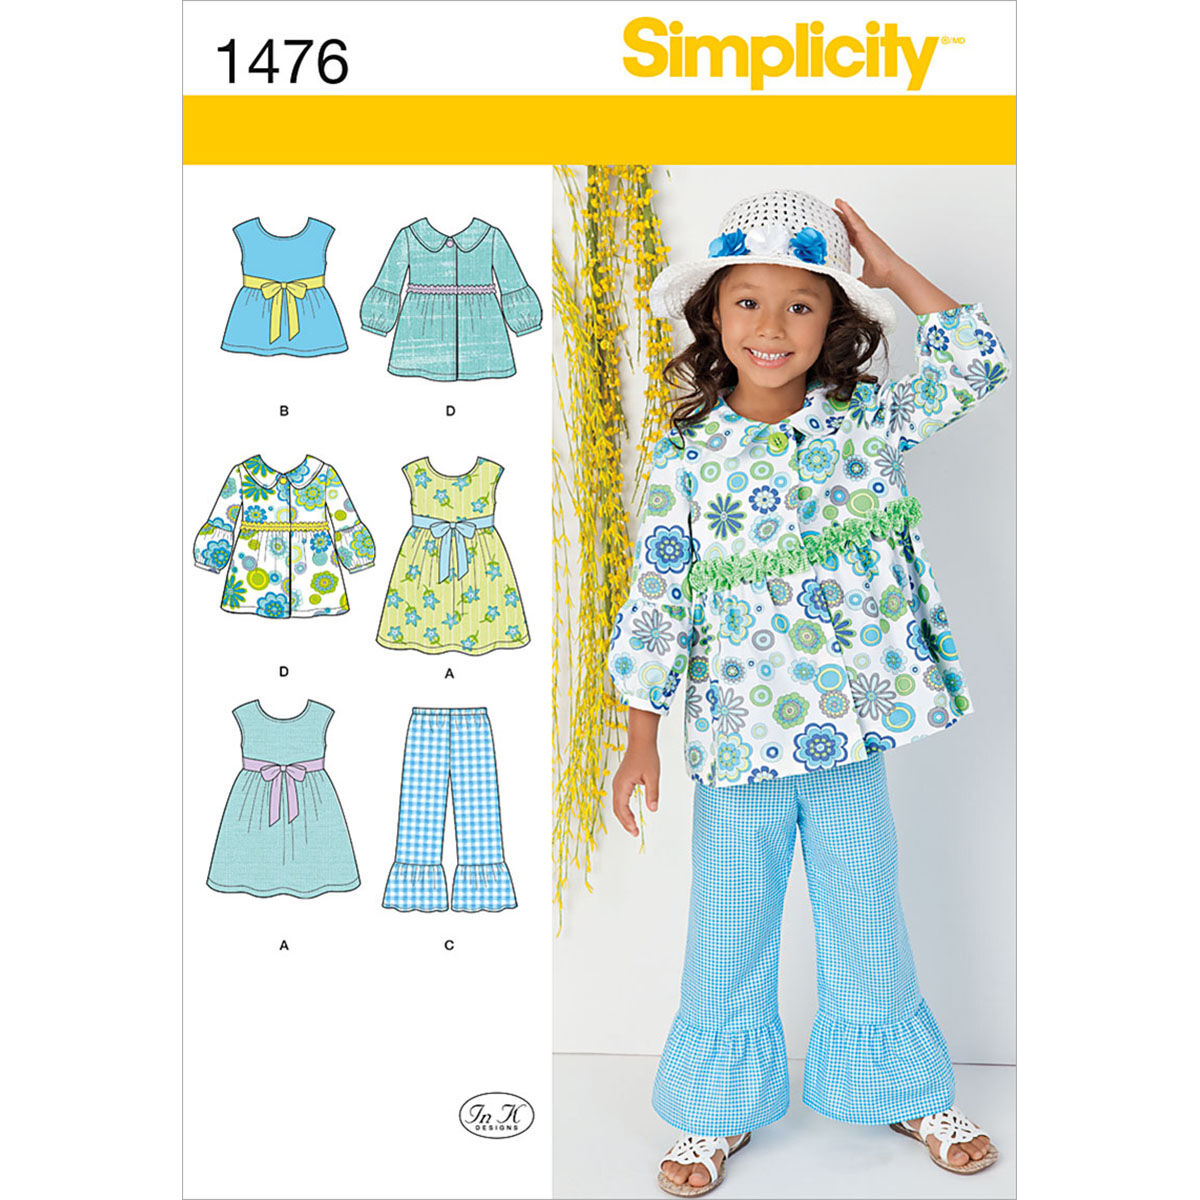 60s 70s Kids Costumes & Clothing Girls & Boys Simplicity Pattern 1476A 3 - 4 - 5 - 6 - 7 - - Child Sportswear $15.95 AT vintagedancer.com